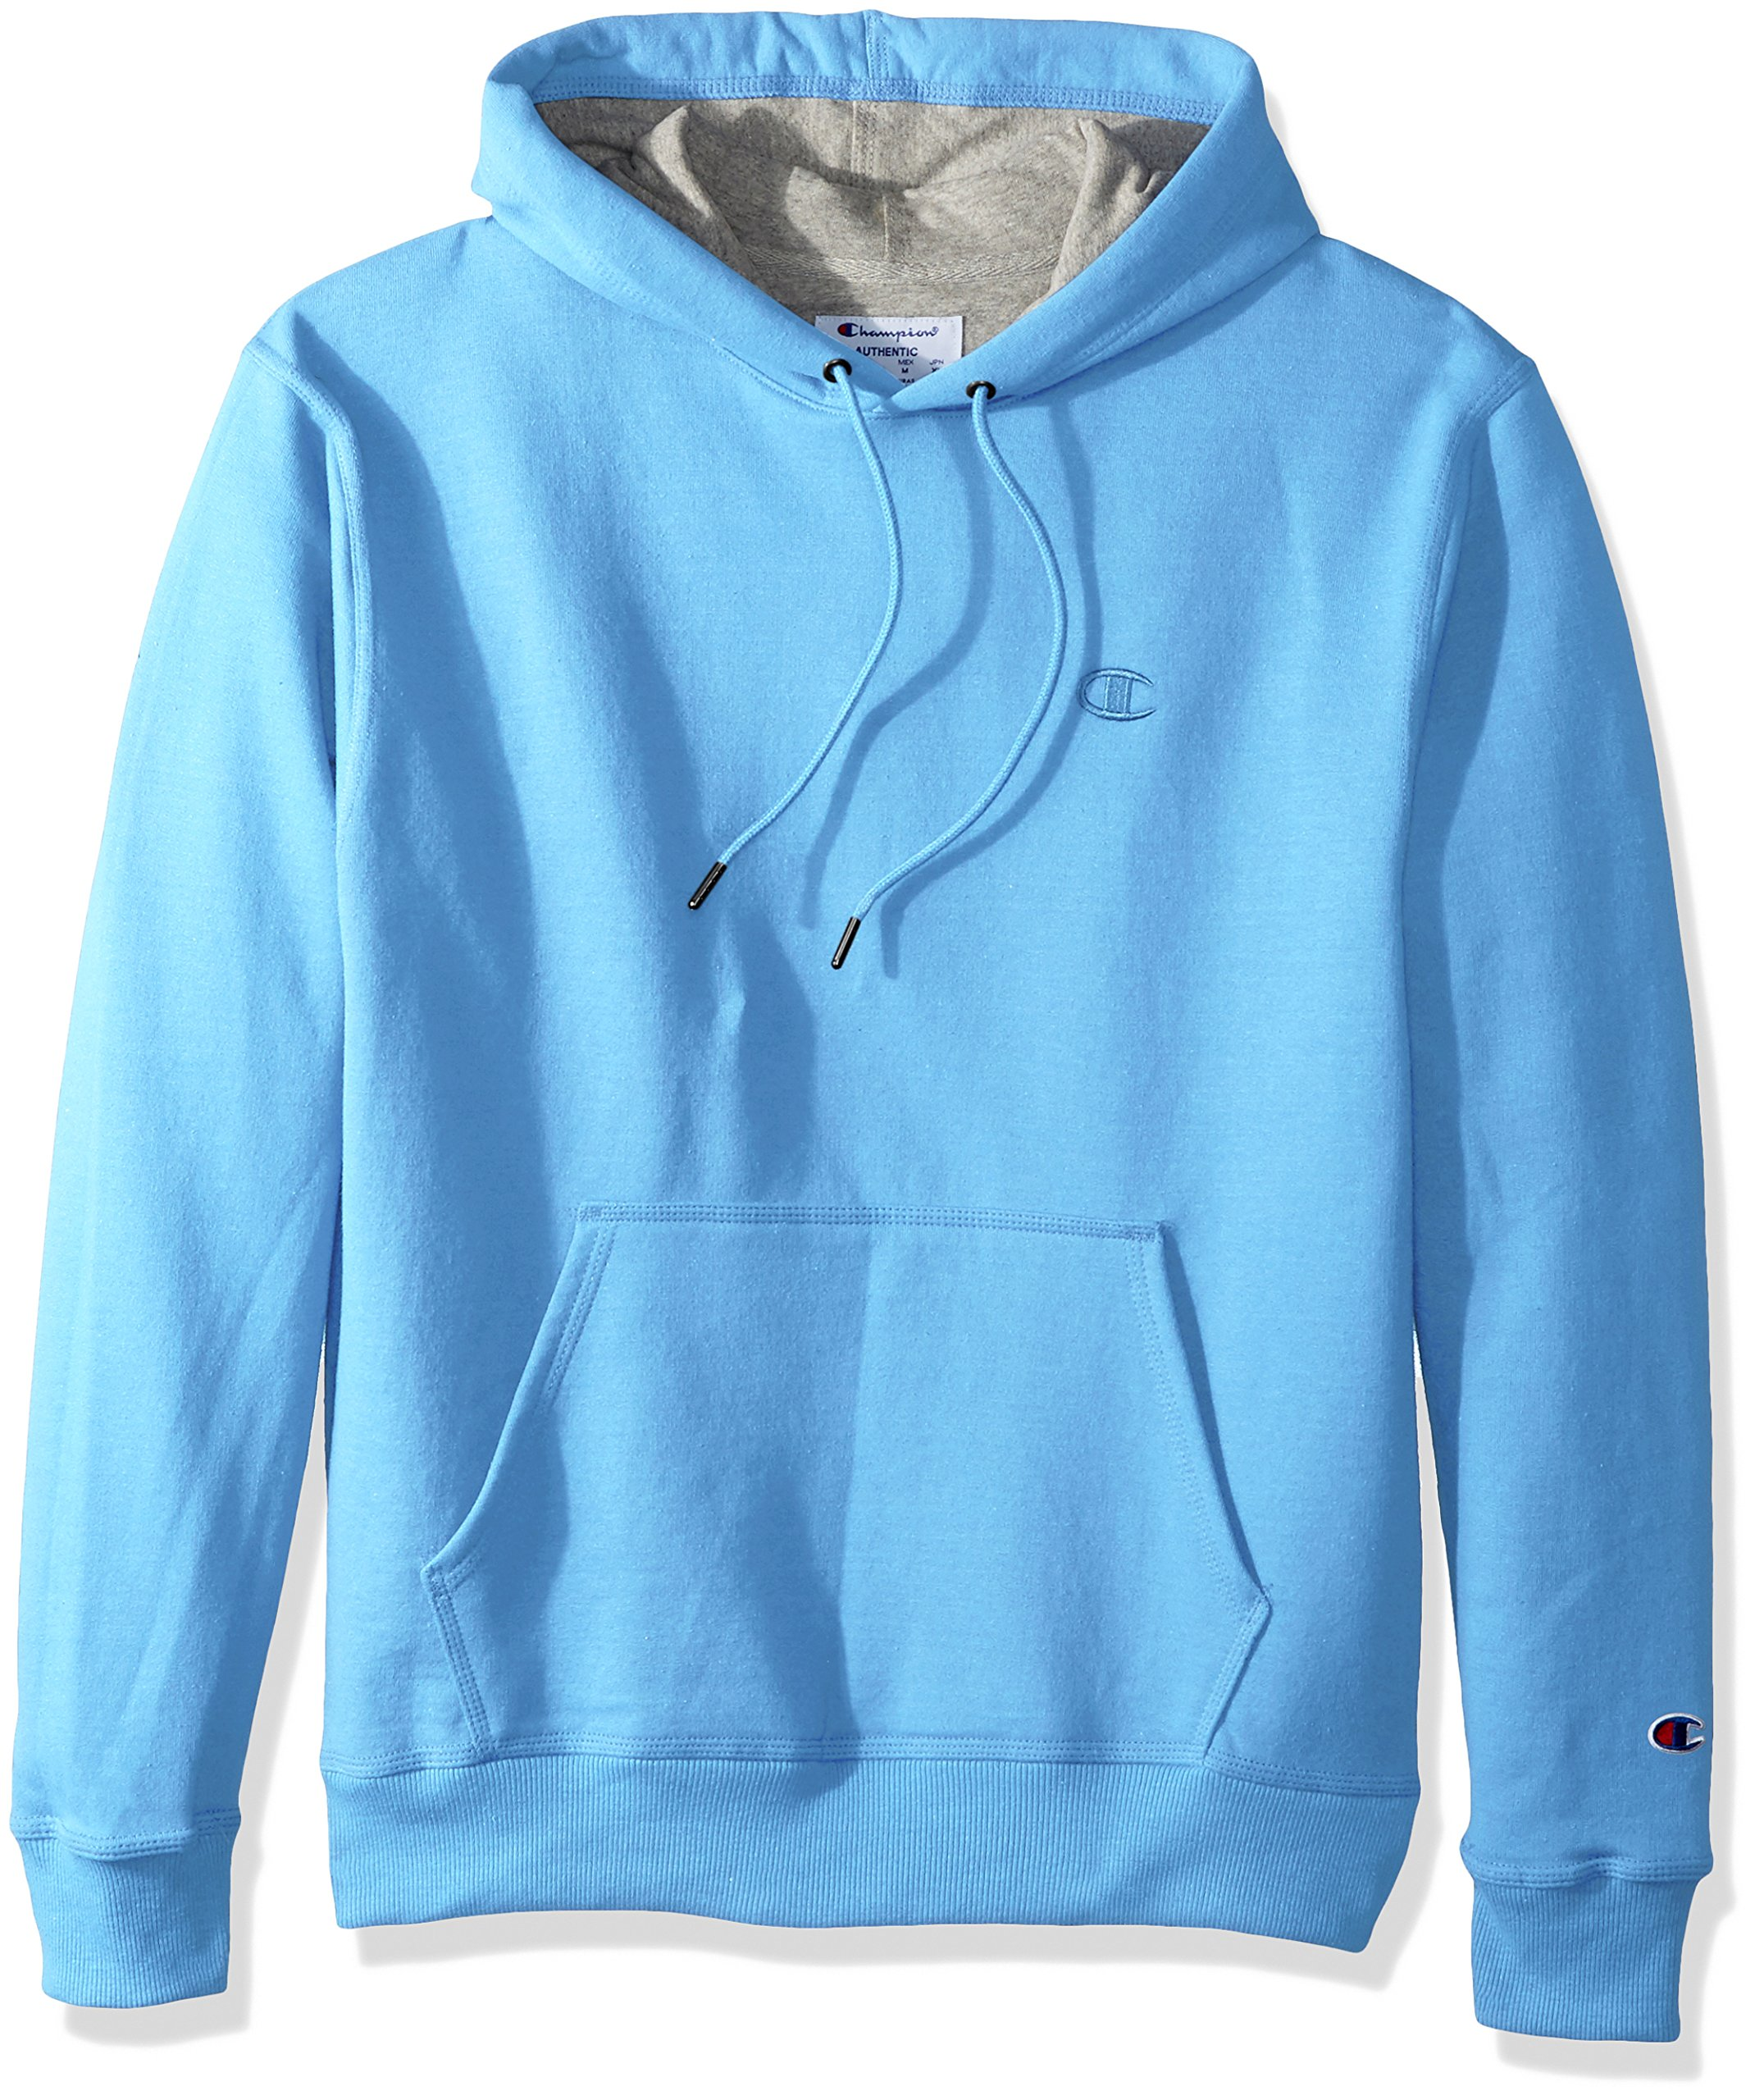 Champion Men's Powerblend Pullover Hoodie, Swiss Blue, Large by Champion